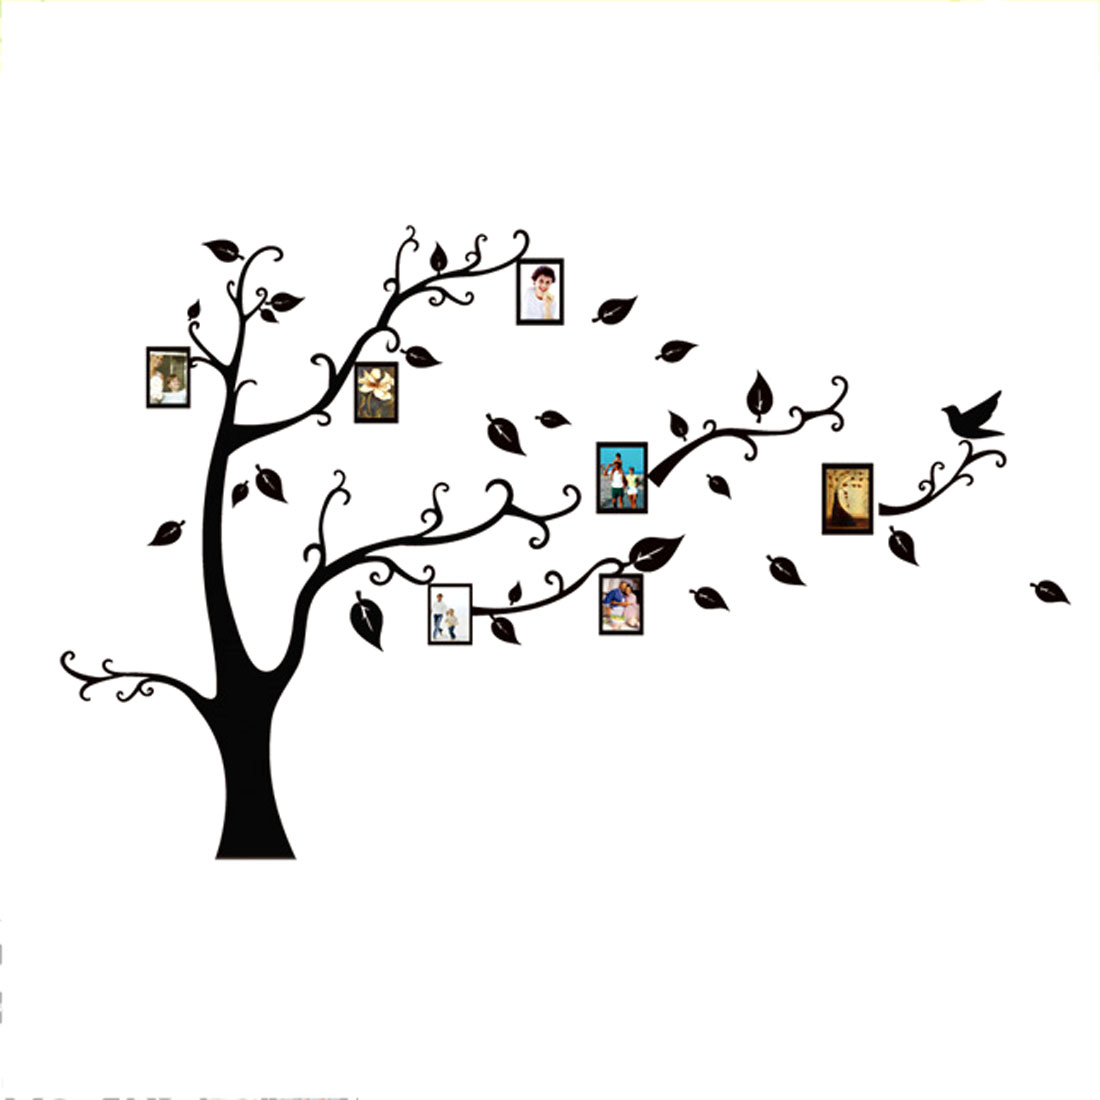 Wall Decor Removable Tree Leaf Bird Pattern Wall Art Wall Sticker Black White